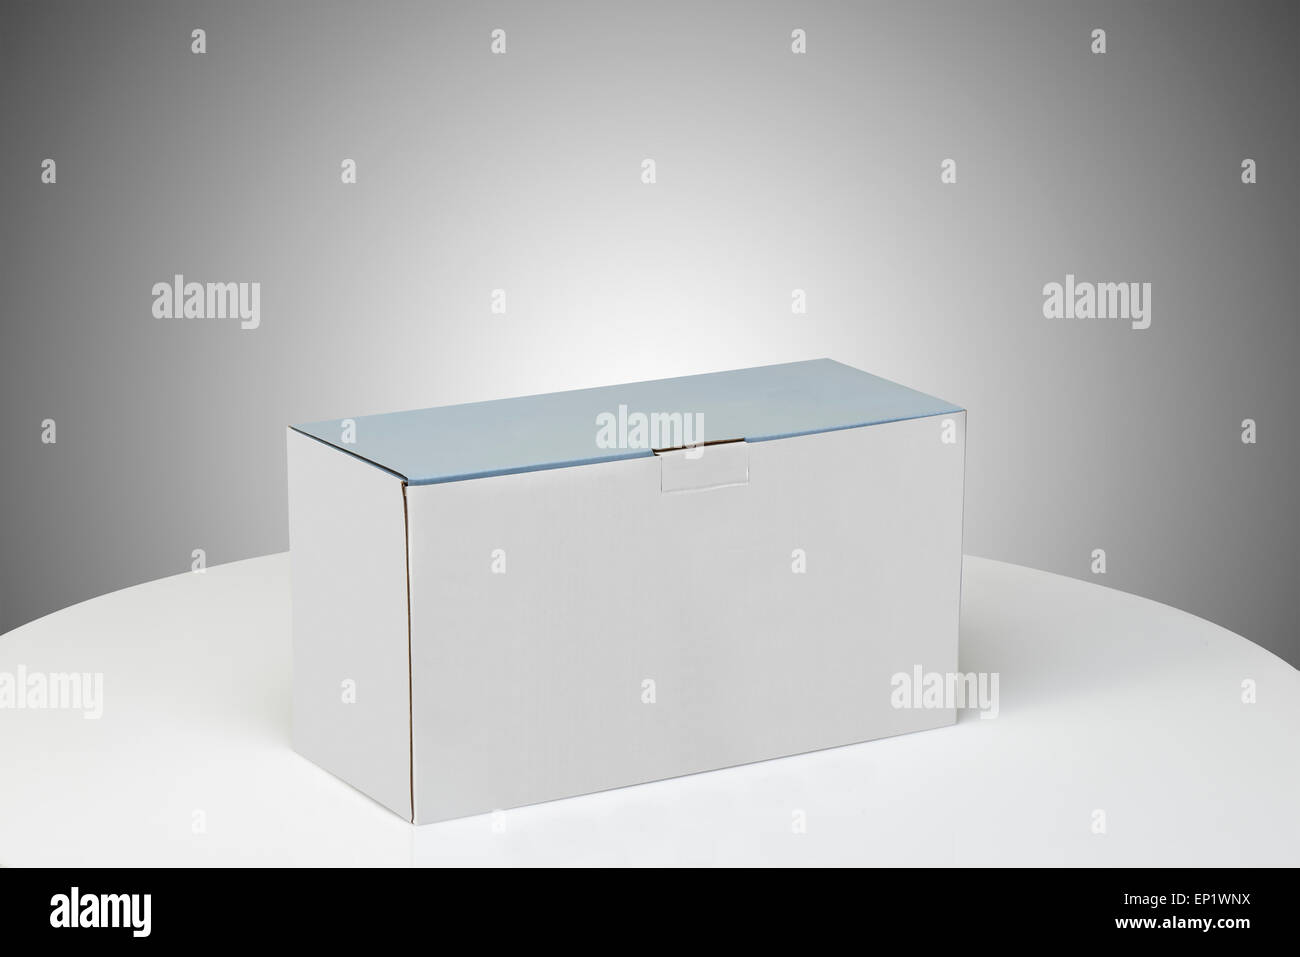 Real Cardboard box closed ready for packaging and delivering - Stock Image